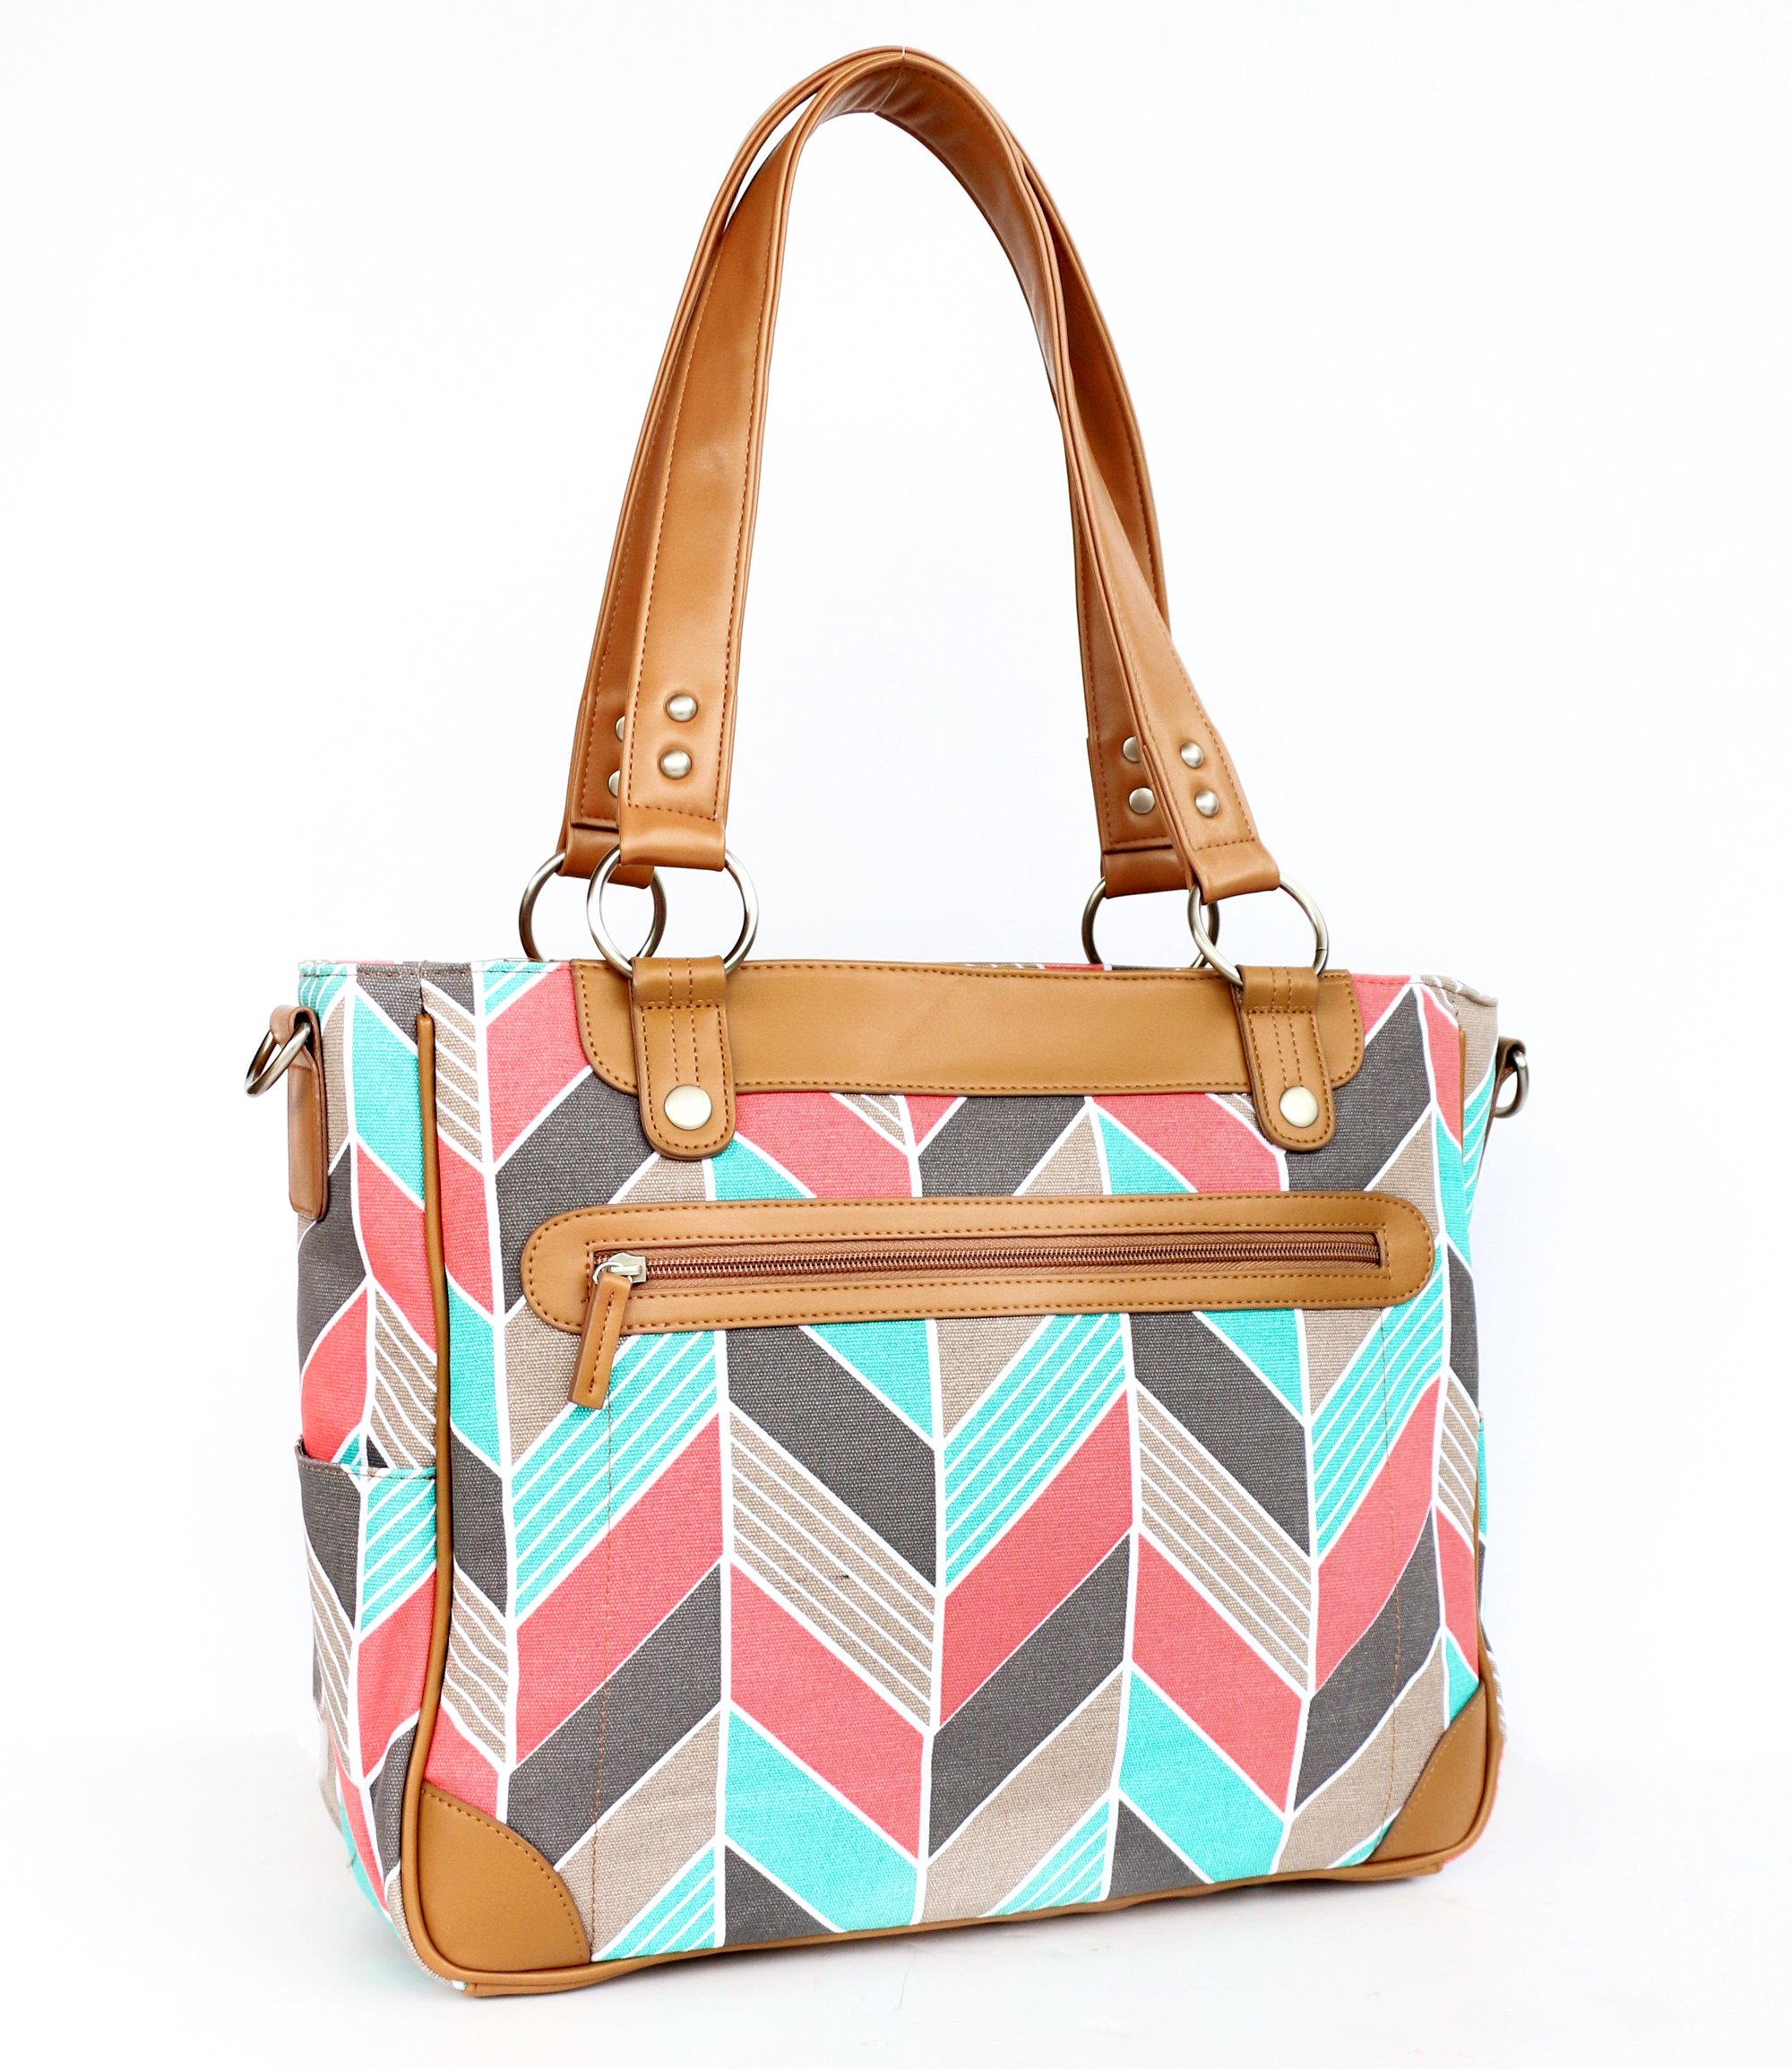 Kailo Chic Camera and Laptop Bag (Coral and Turquoise Herringbone)